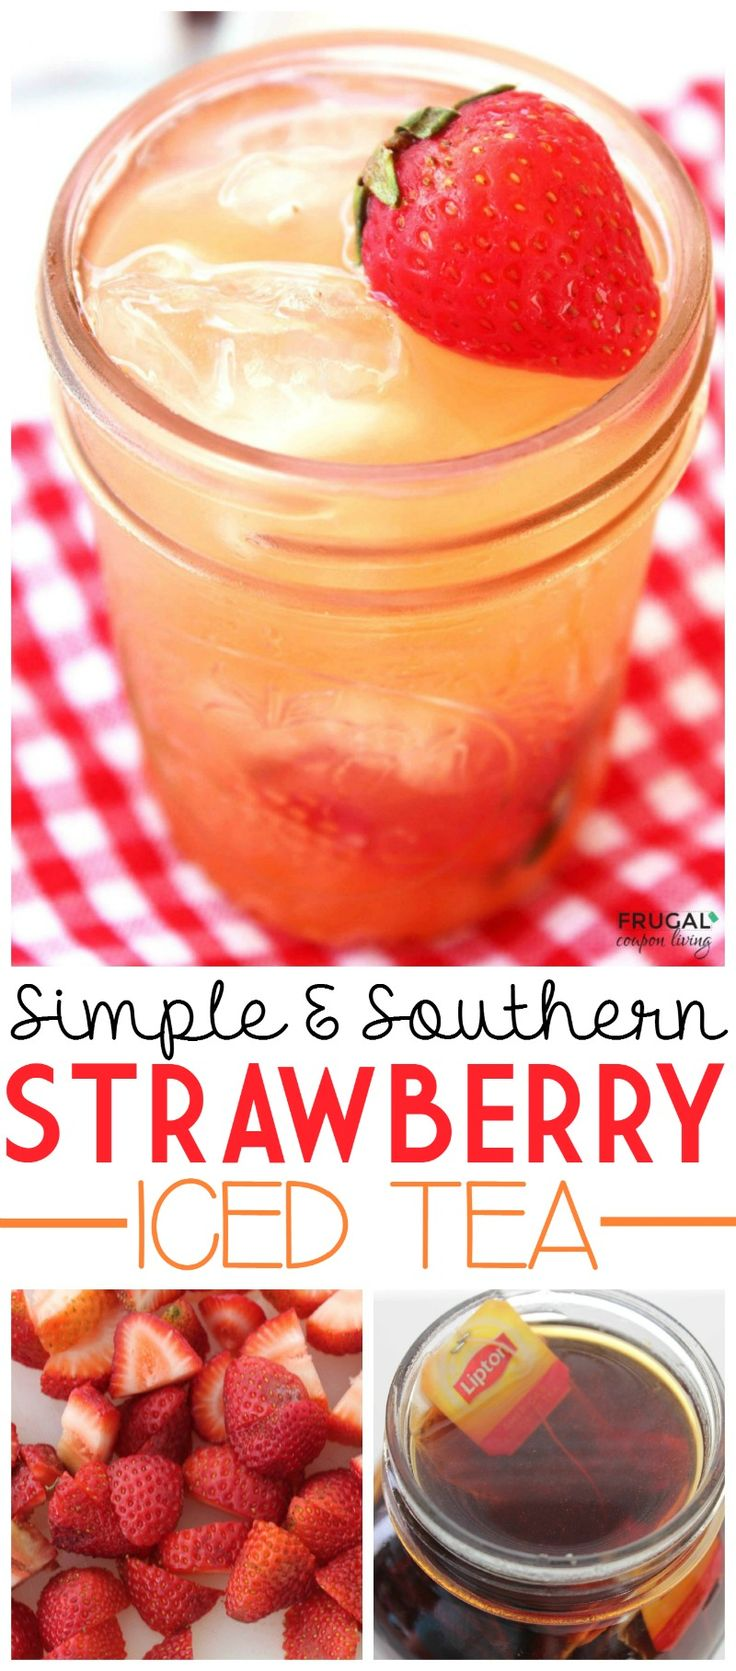 Simple, Southern, and Sweet - with good southern food comes a glass of sweet iced tea. We love this Southern Strawberry Tea Recipe perfect with a tall glass filled with ice. Great summer beverage idea!